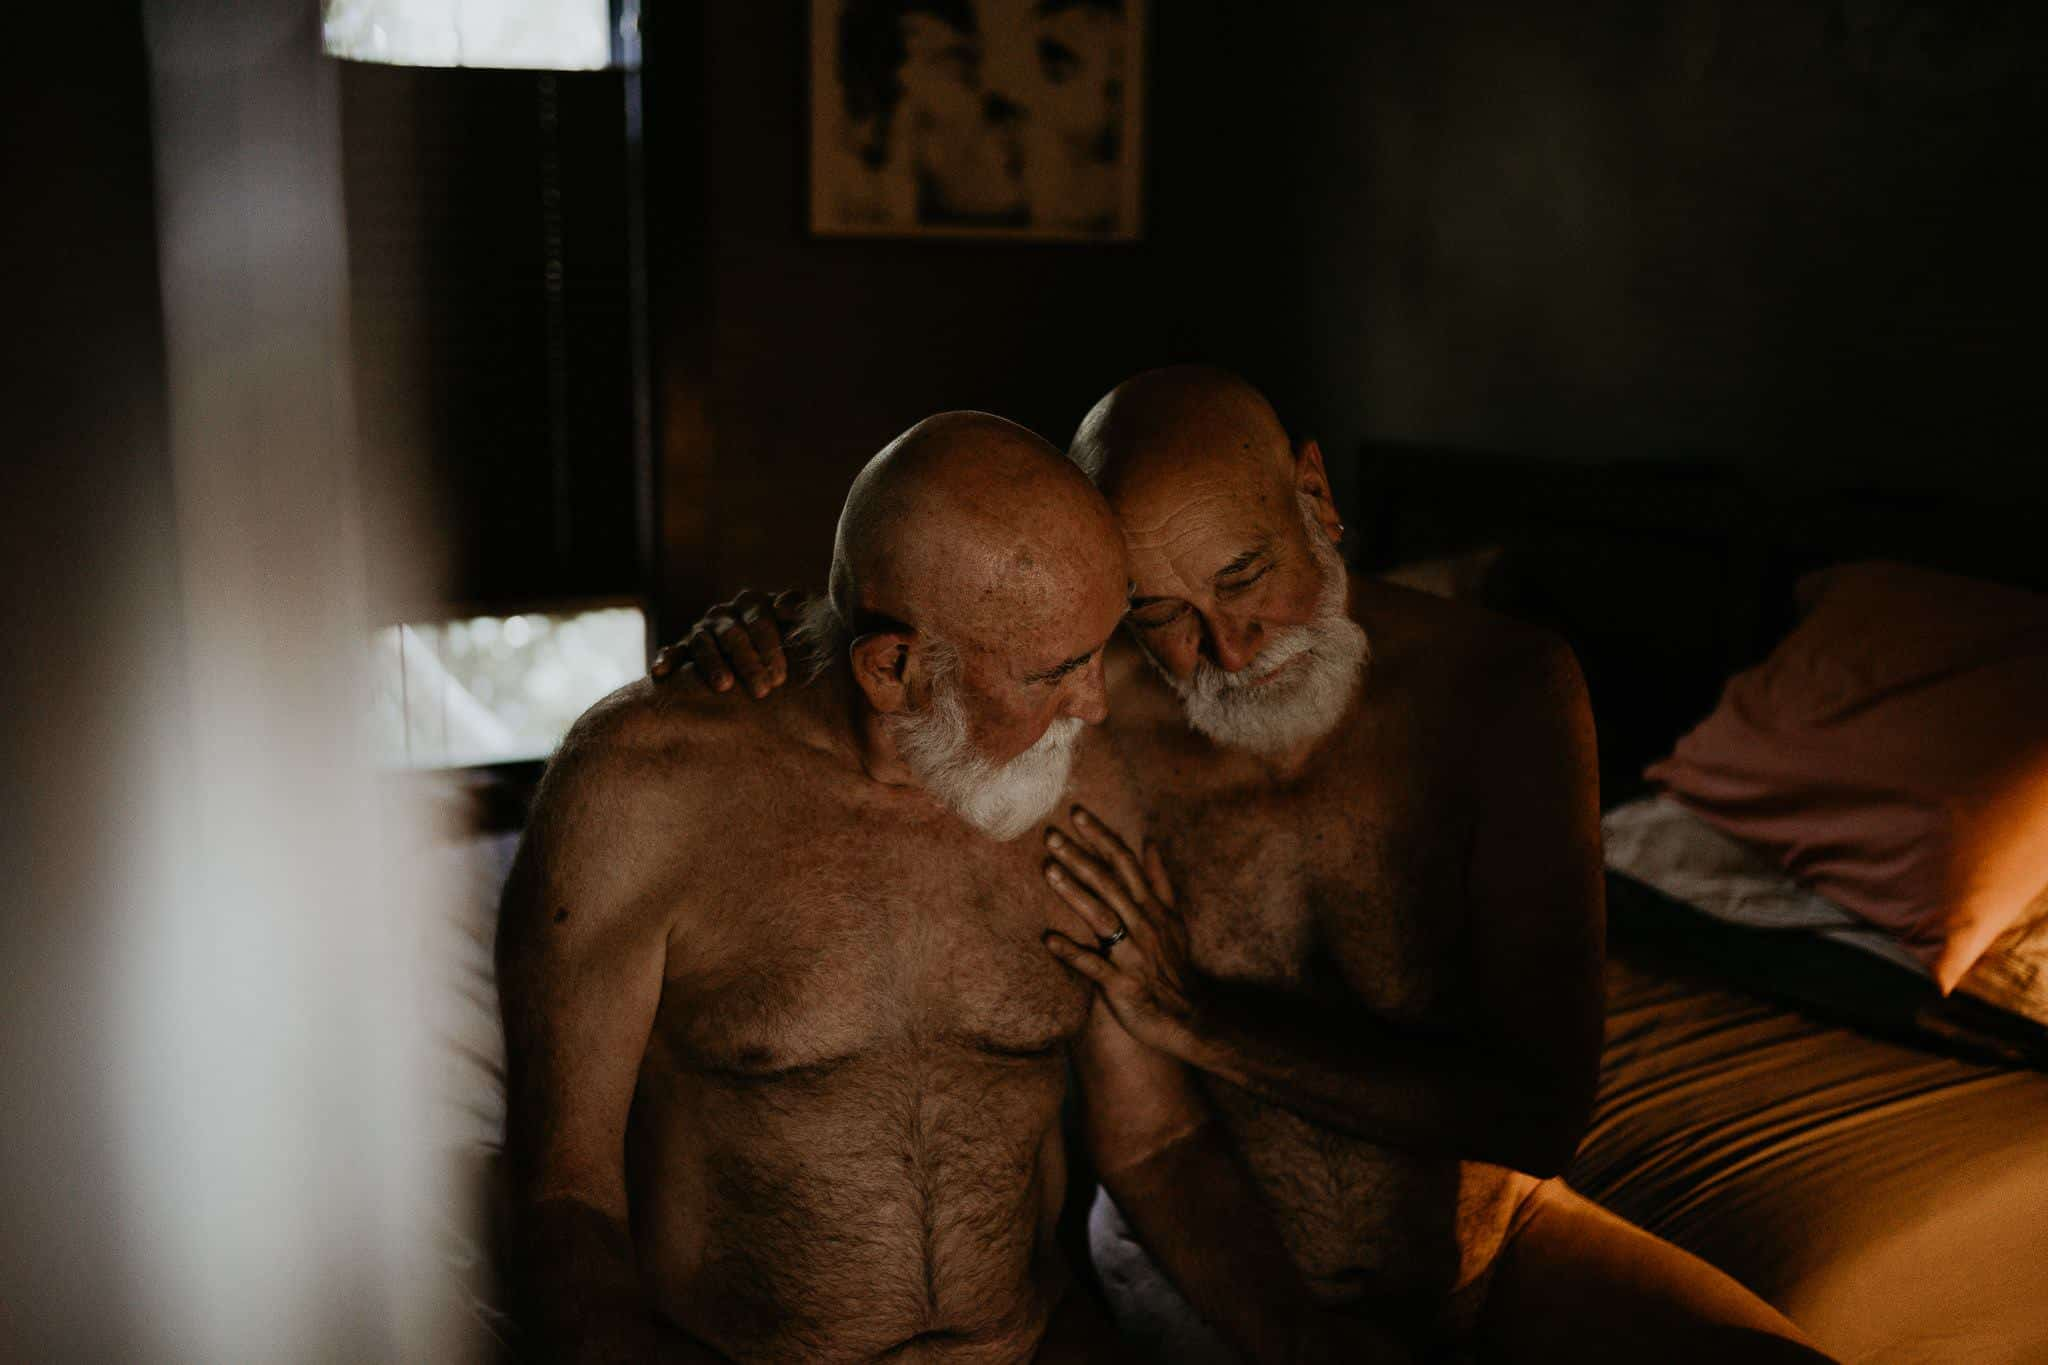 Two elderly gay man embracing each other naked on a bed